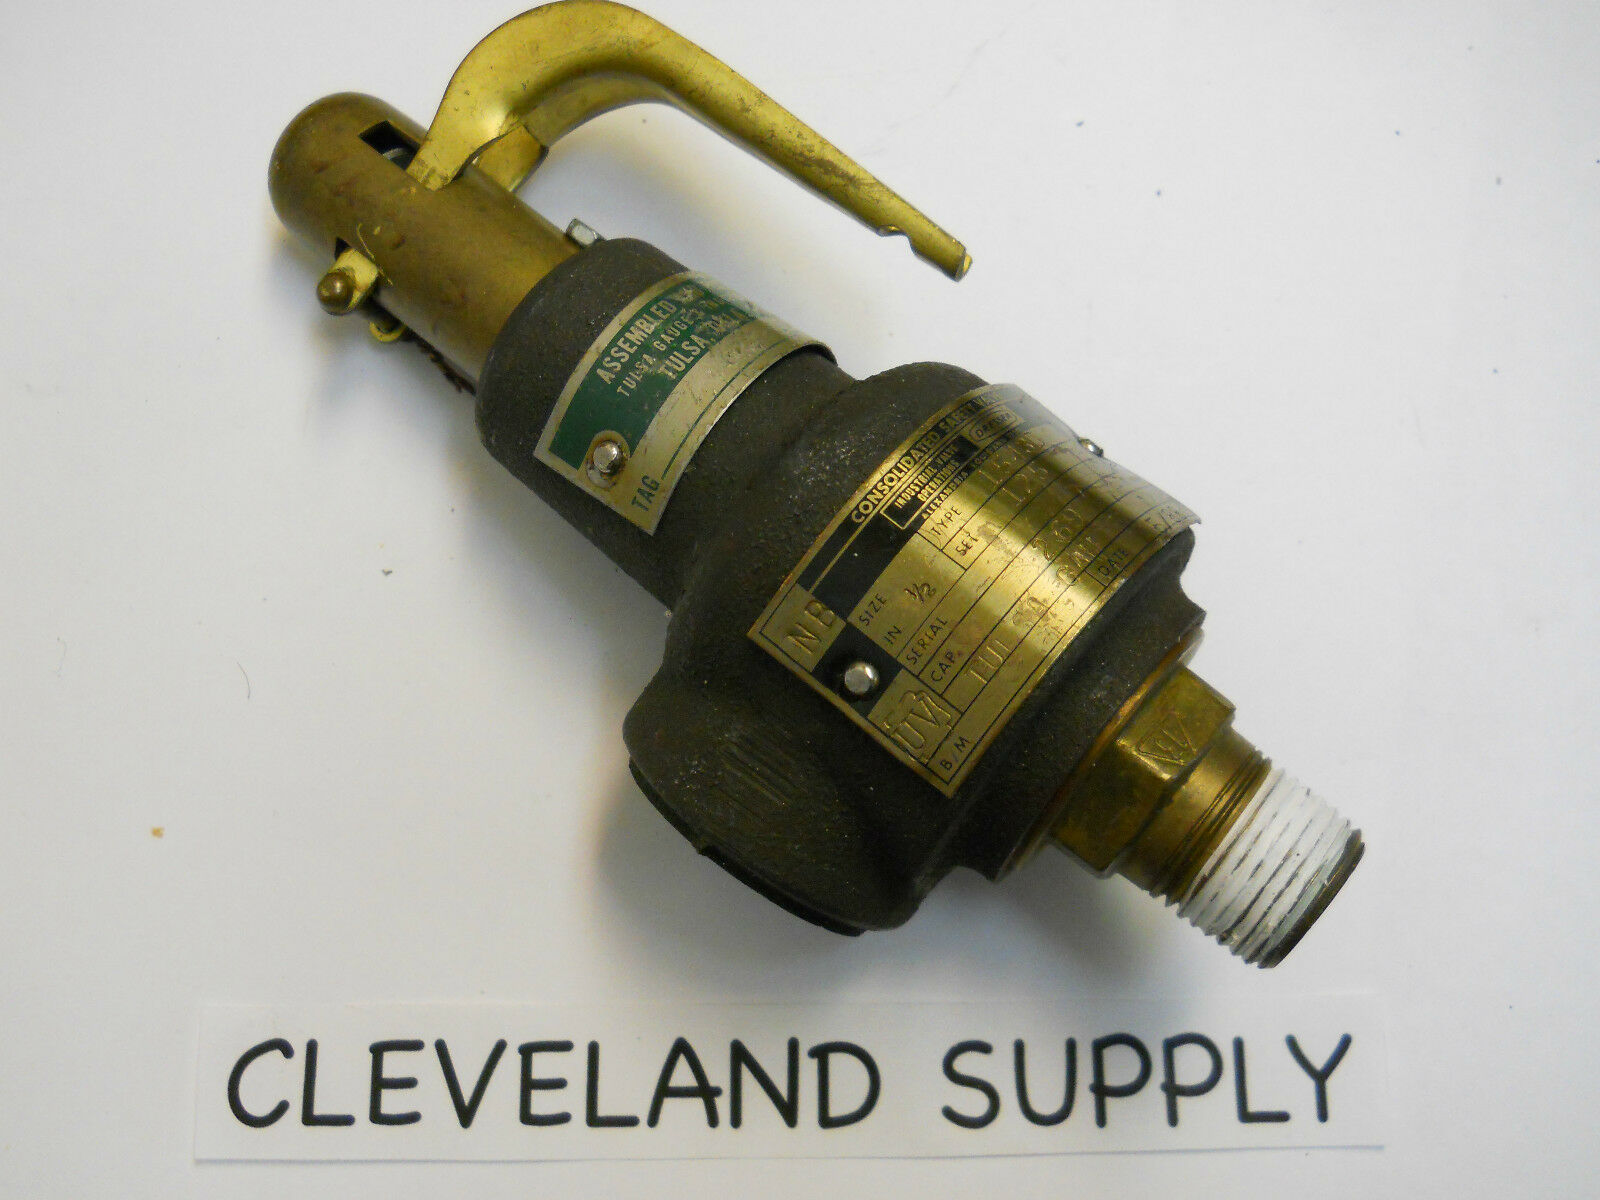 Dresser Consolidated 154 Safety Relief Valve 125 Set Pressure 1 2 Refurbished Of 1only Available